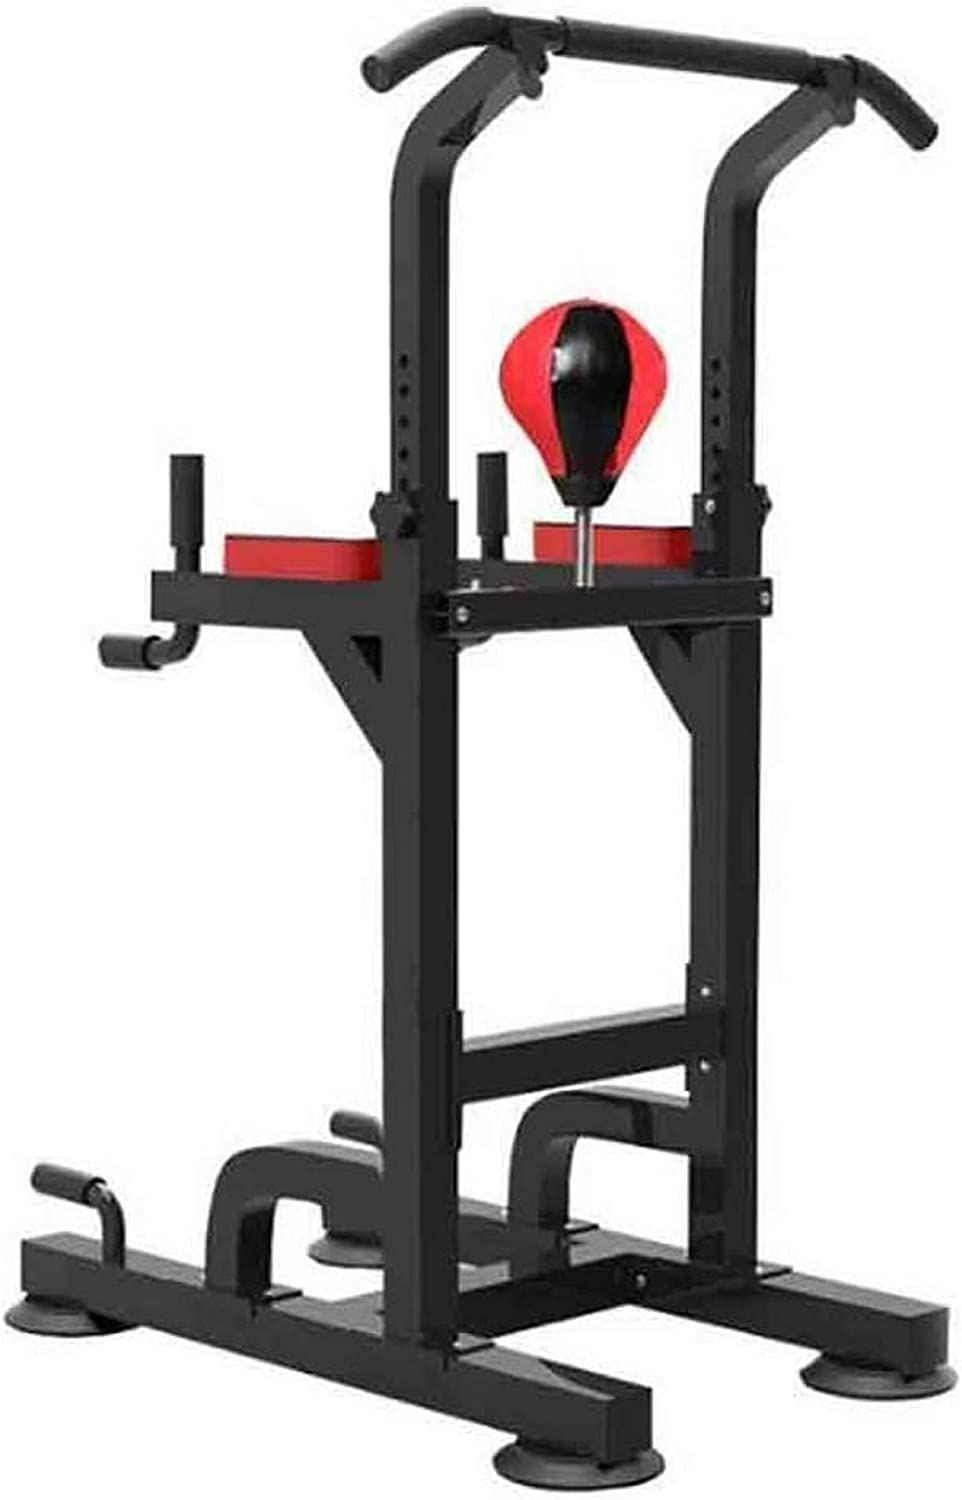 Wghz Power Tower Workout Dip Station Pull Up Bar Stand Workout Station with Boxing Ball Design Multifunctional Fitness Machine for Home Gymnastics